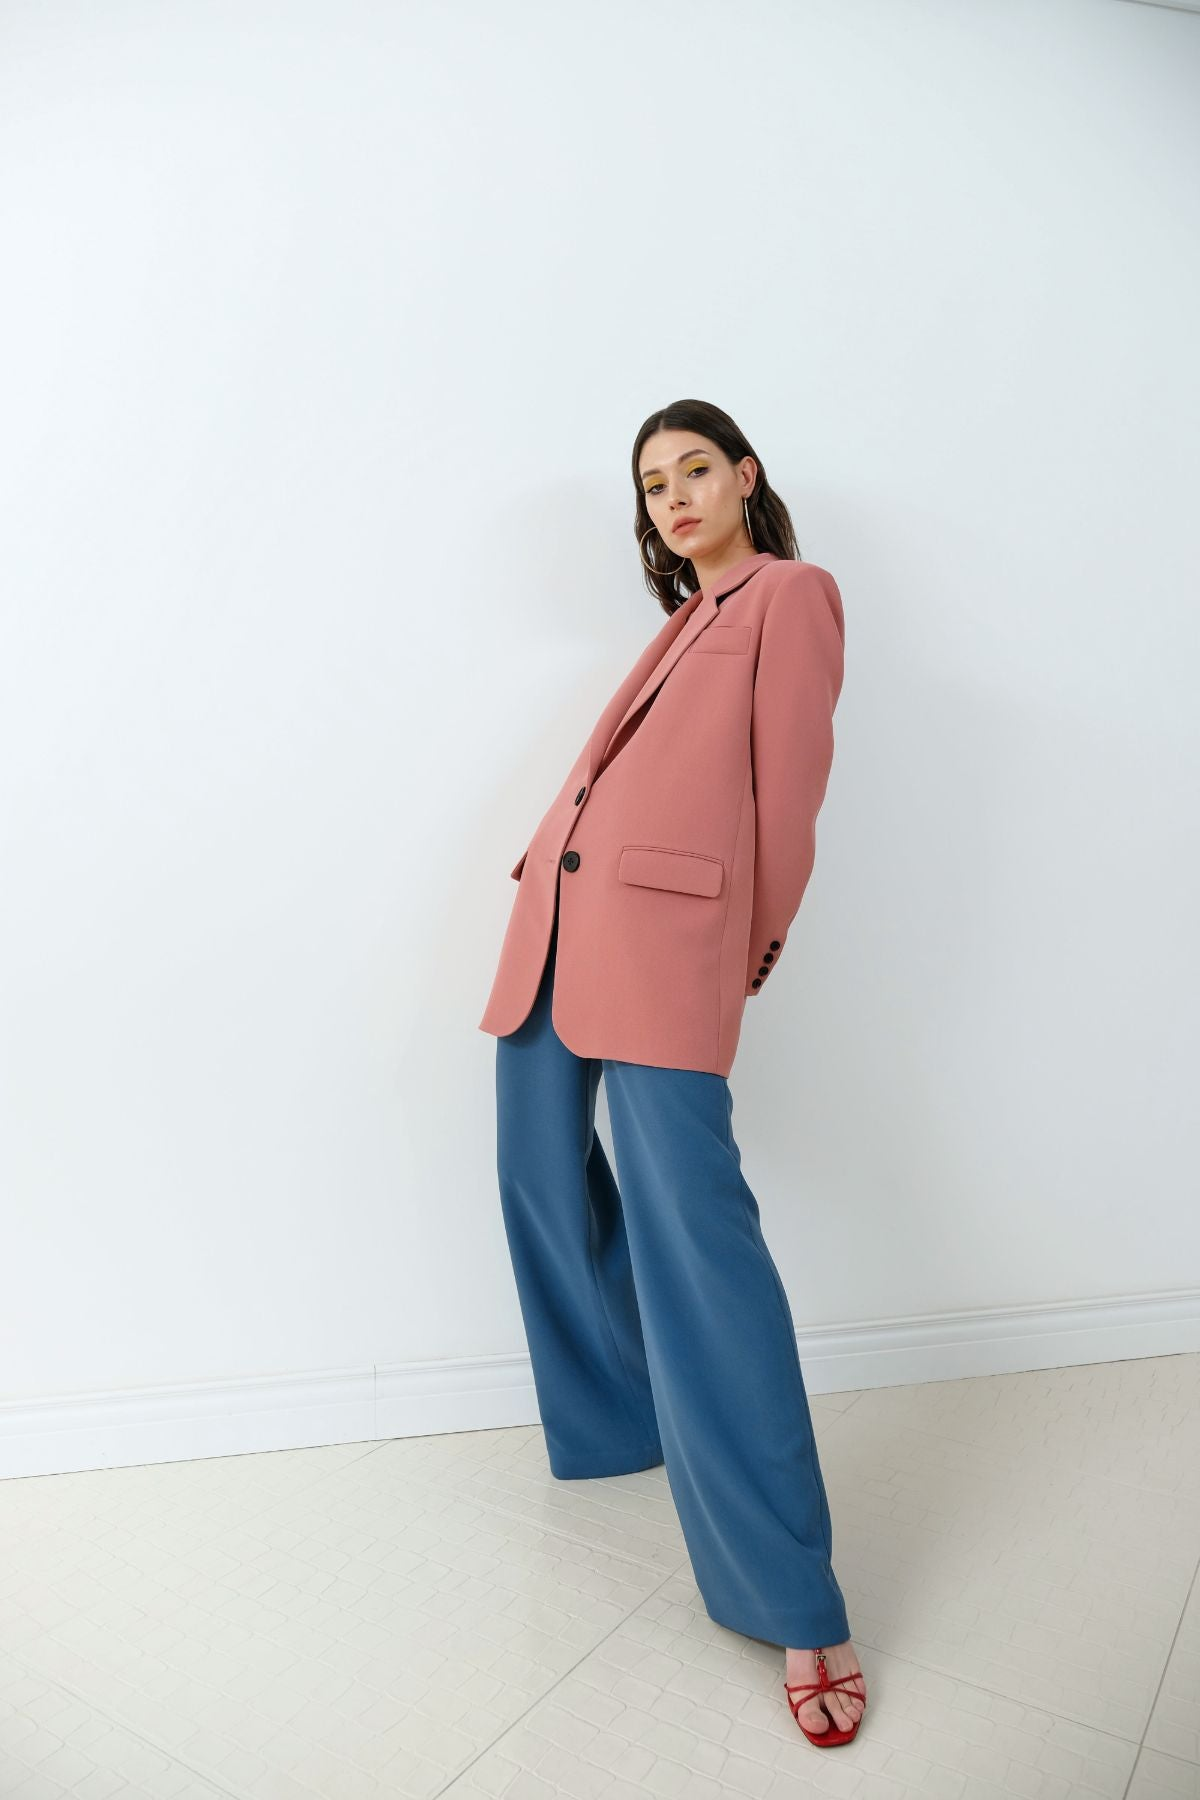 Coral Jacket blazers from IRÁRO curated by pu·rist